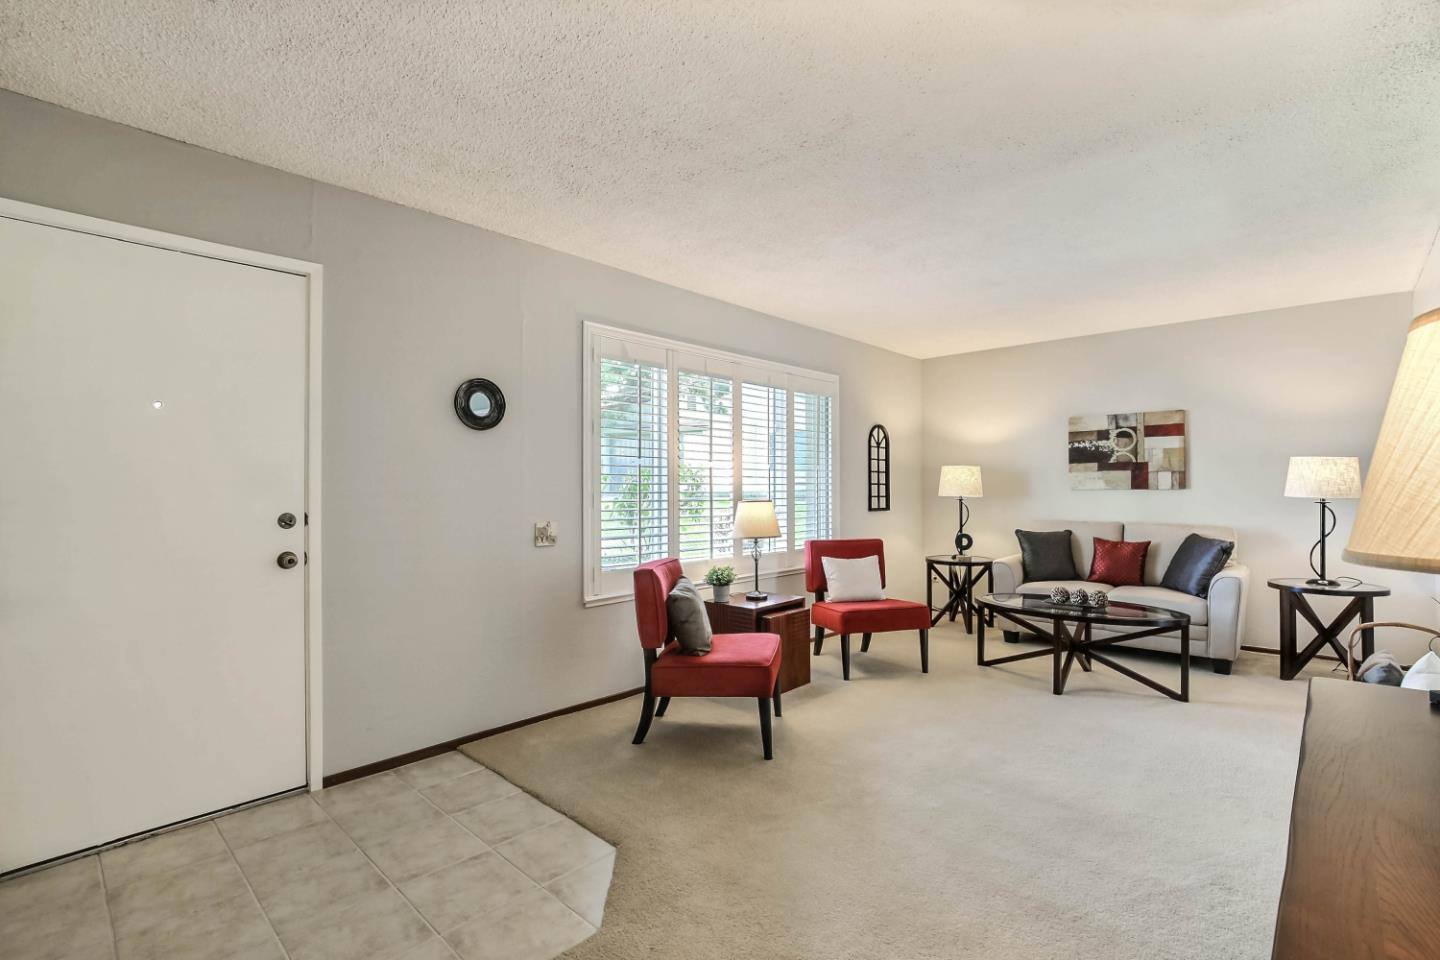 Detail Gallery Image 1 of 13 For 1240 Whitfield Ct, San Jose, CA, 95131 - 4 Beds | 1/1 Baths